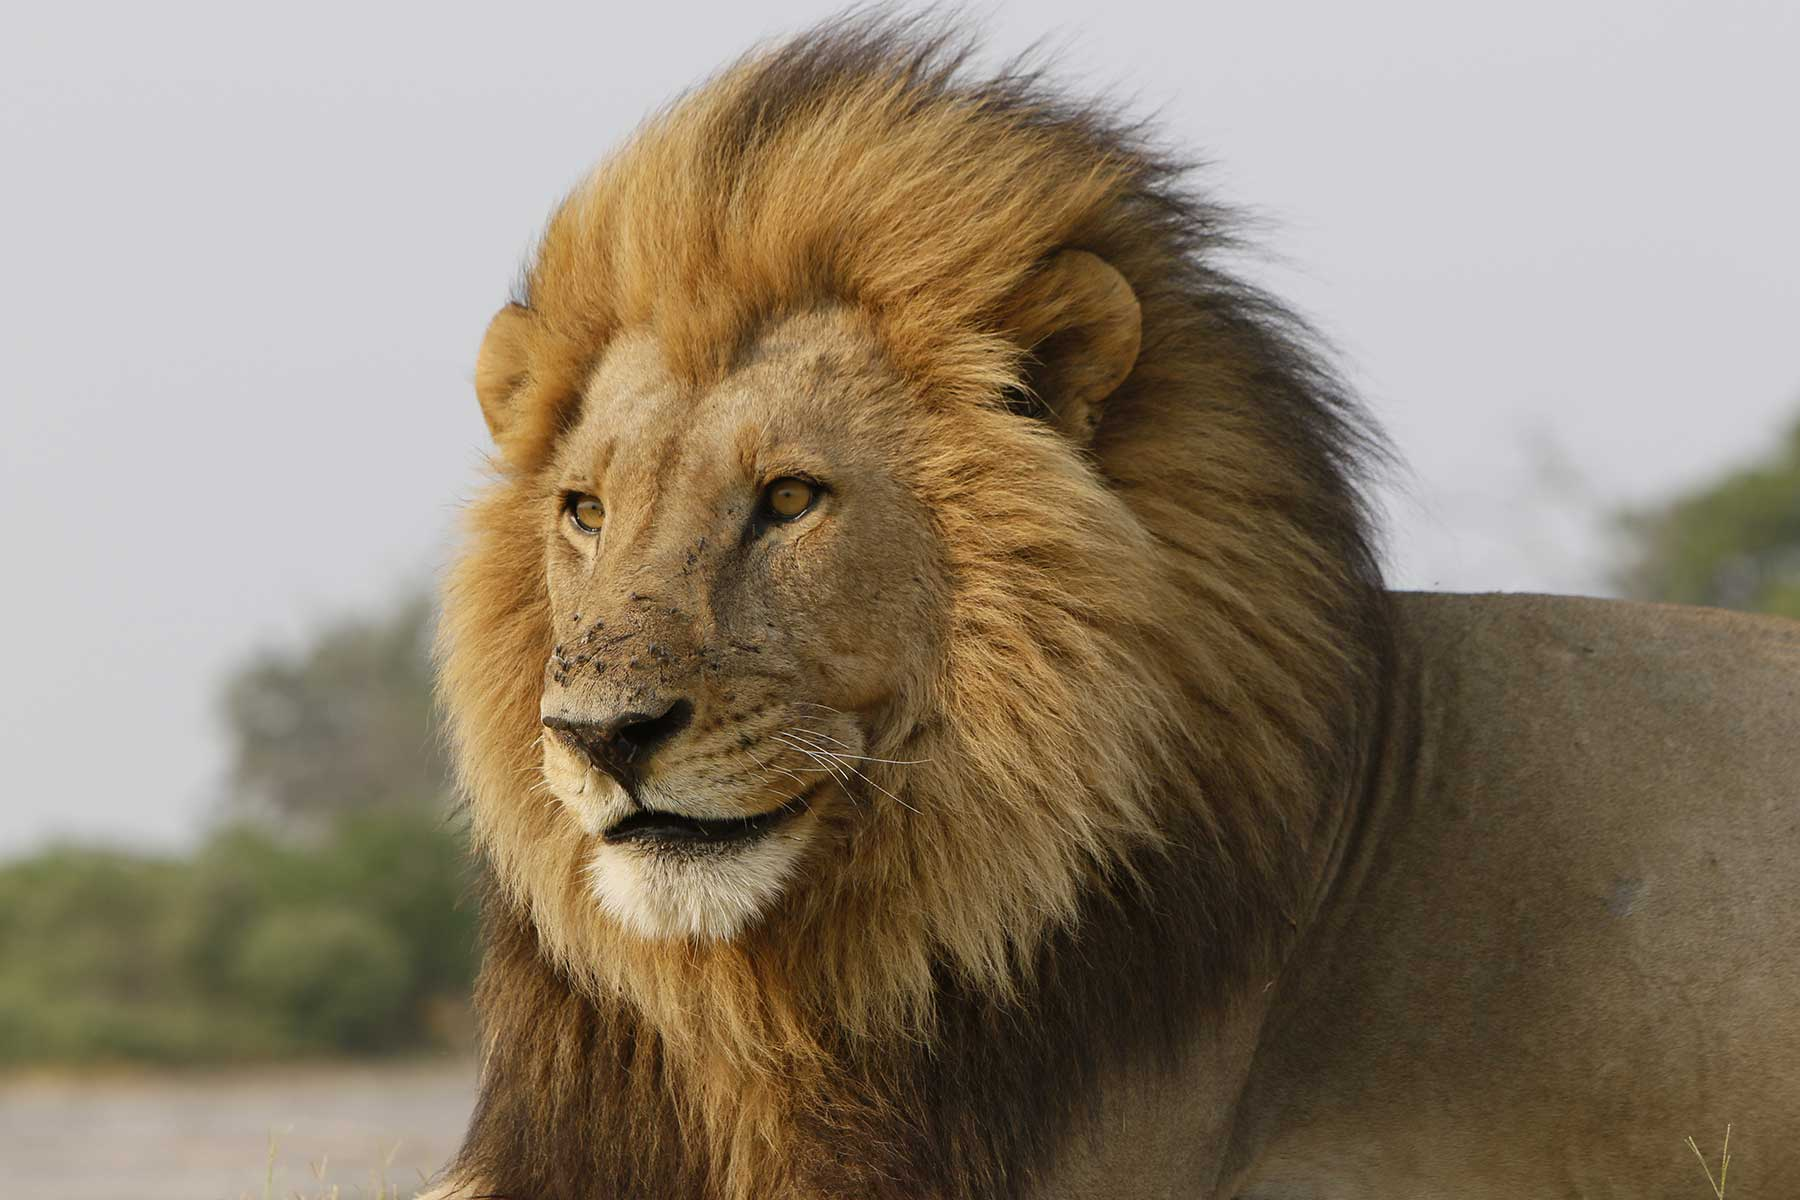 Kalahari lion seen on game drive with Chase Africa Safaris